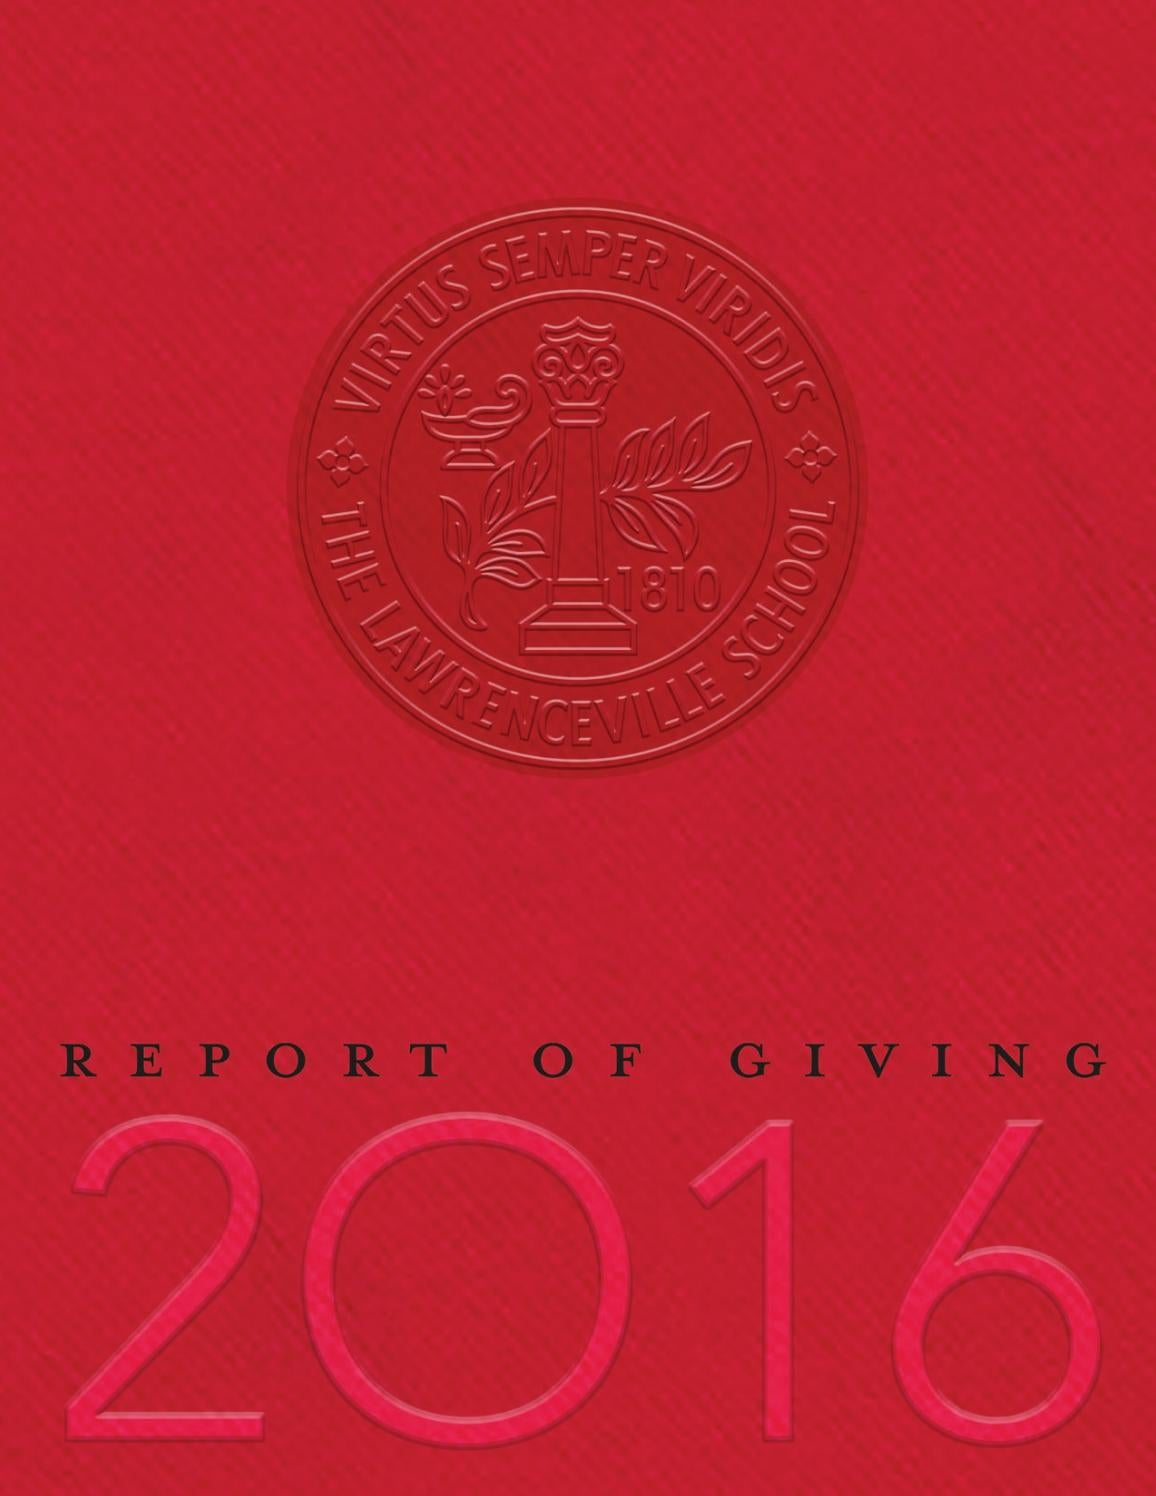 Lawrenceville Annual Report Of Giving By The Lawrenceville School Issuu